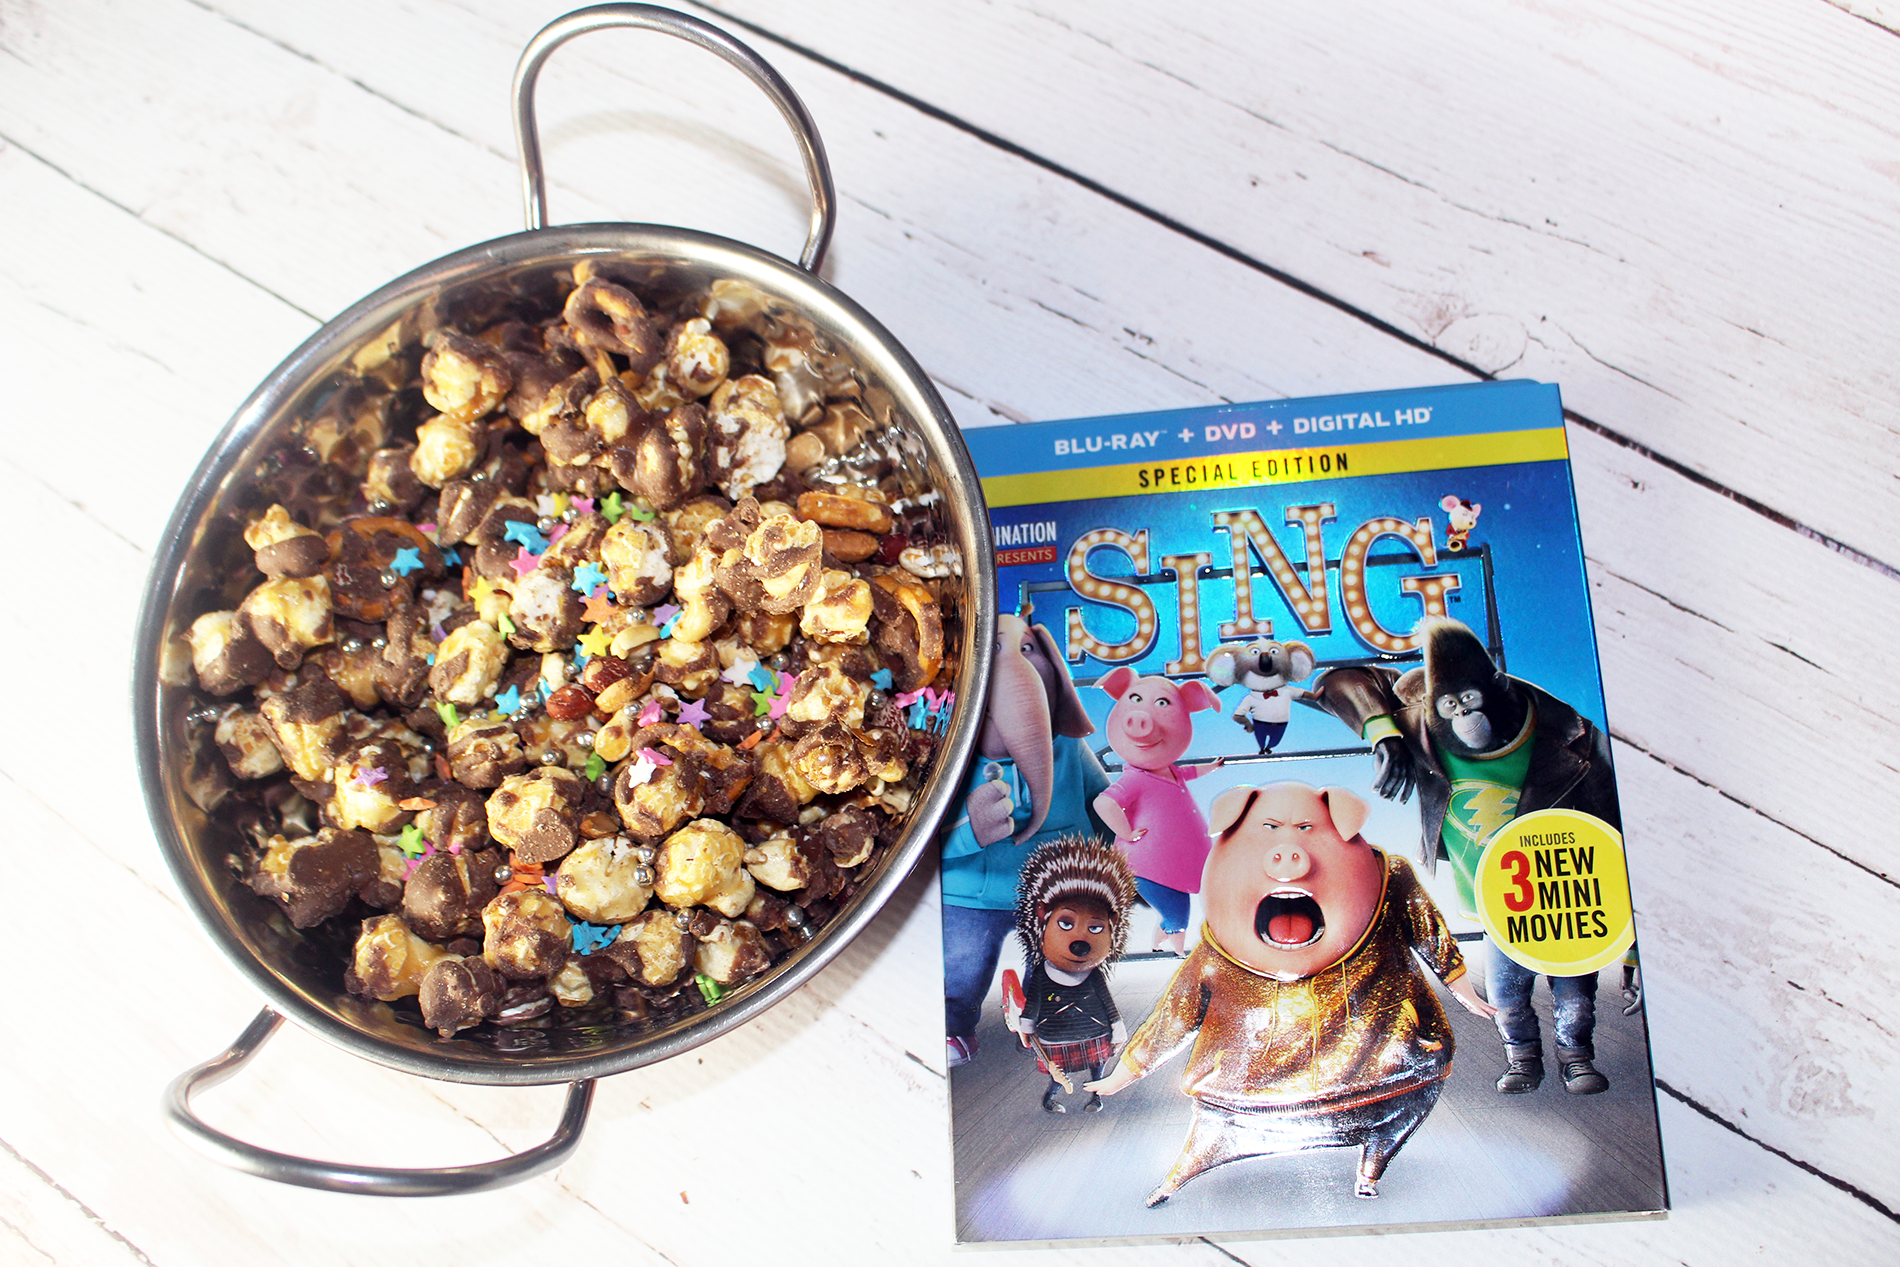 Family Movie Night With Sing Now on Blu-Ray and DVD + Sing Inspired Movie Night Treats!